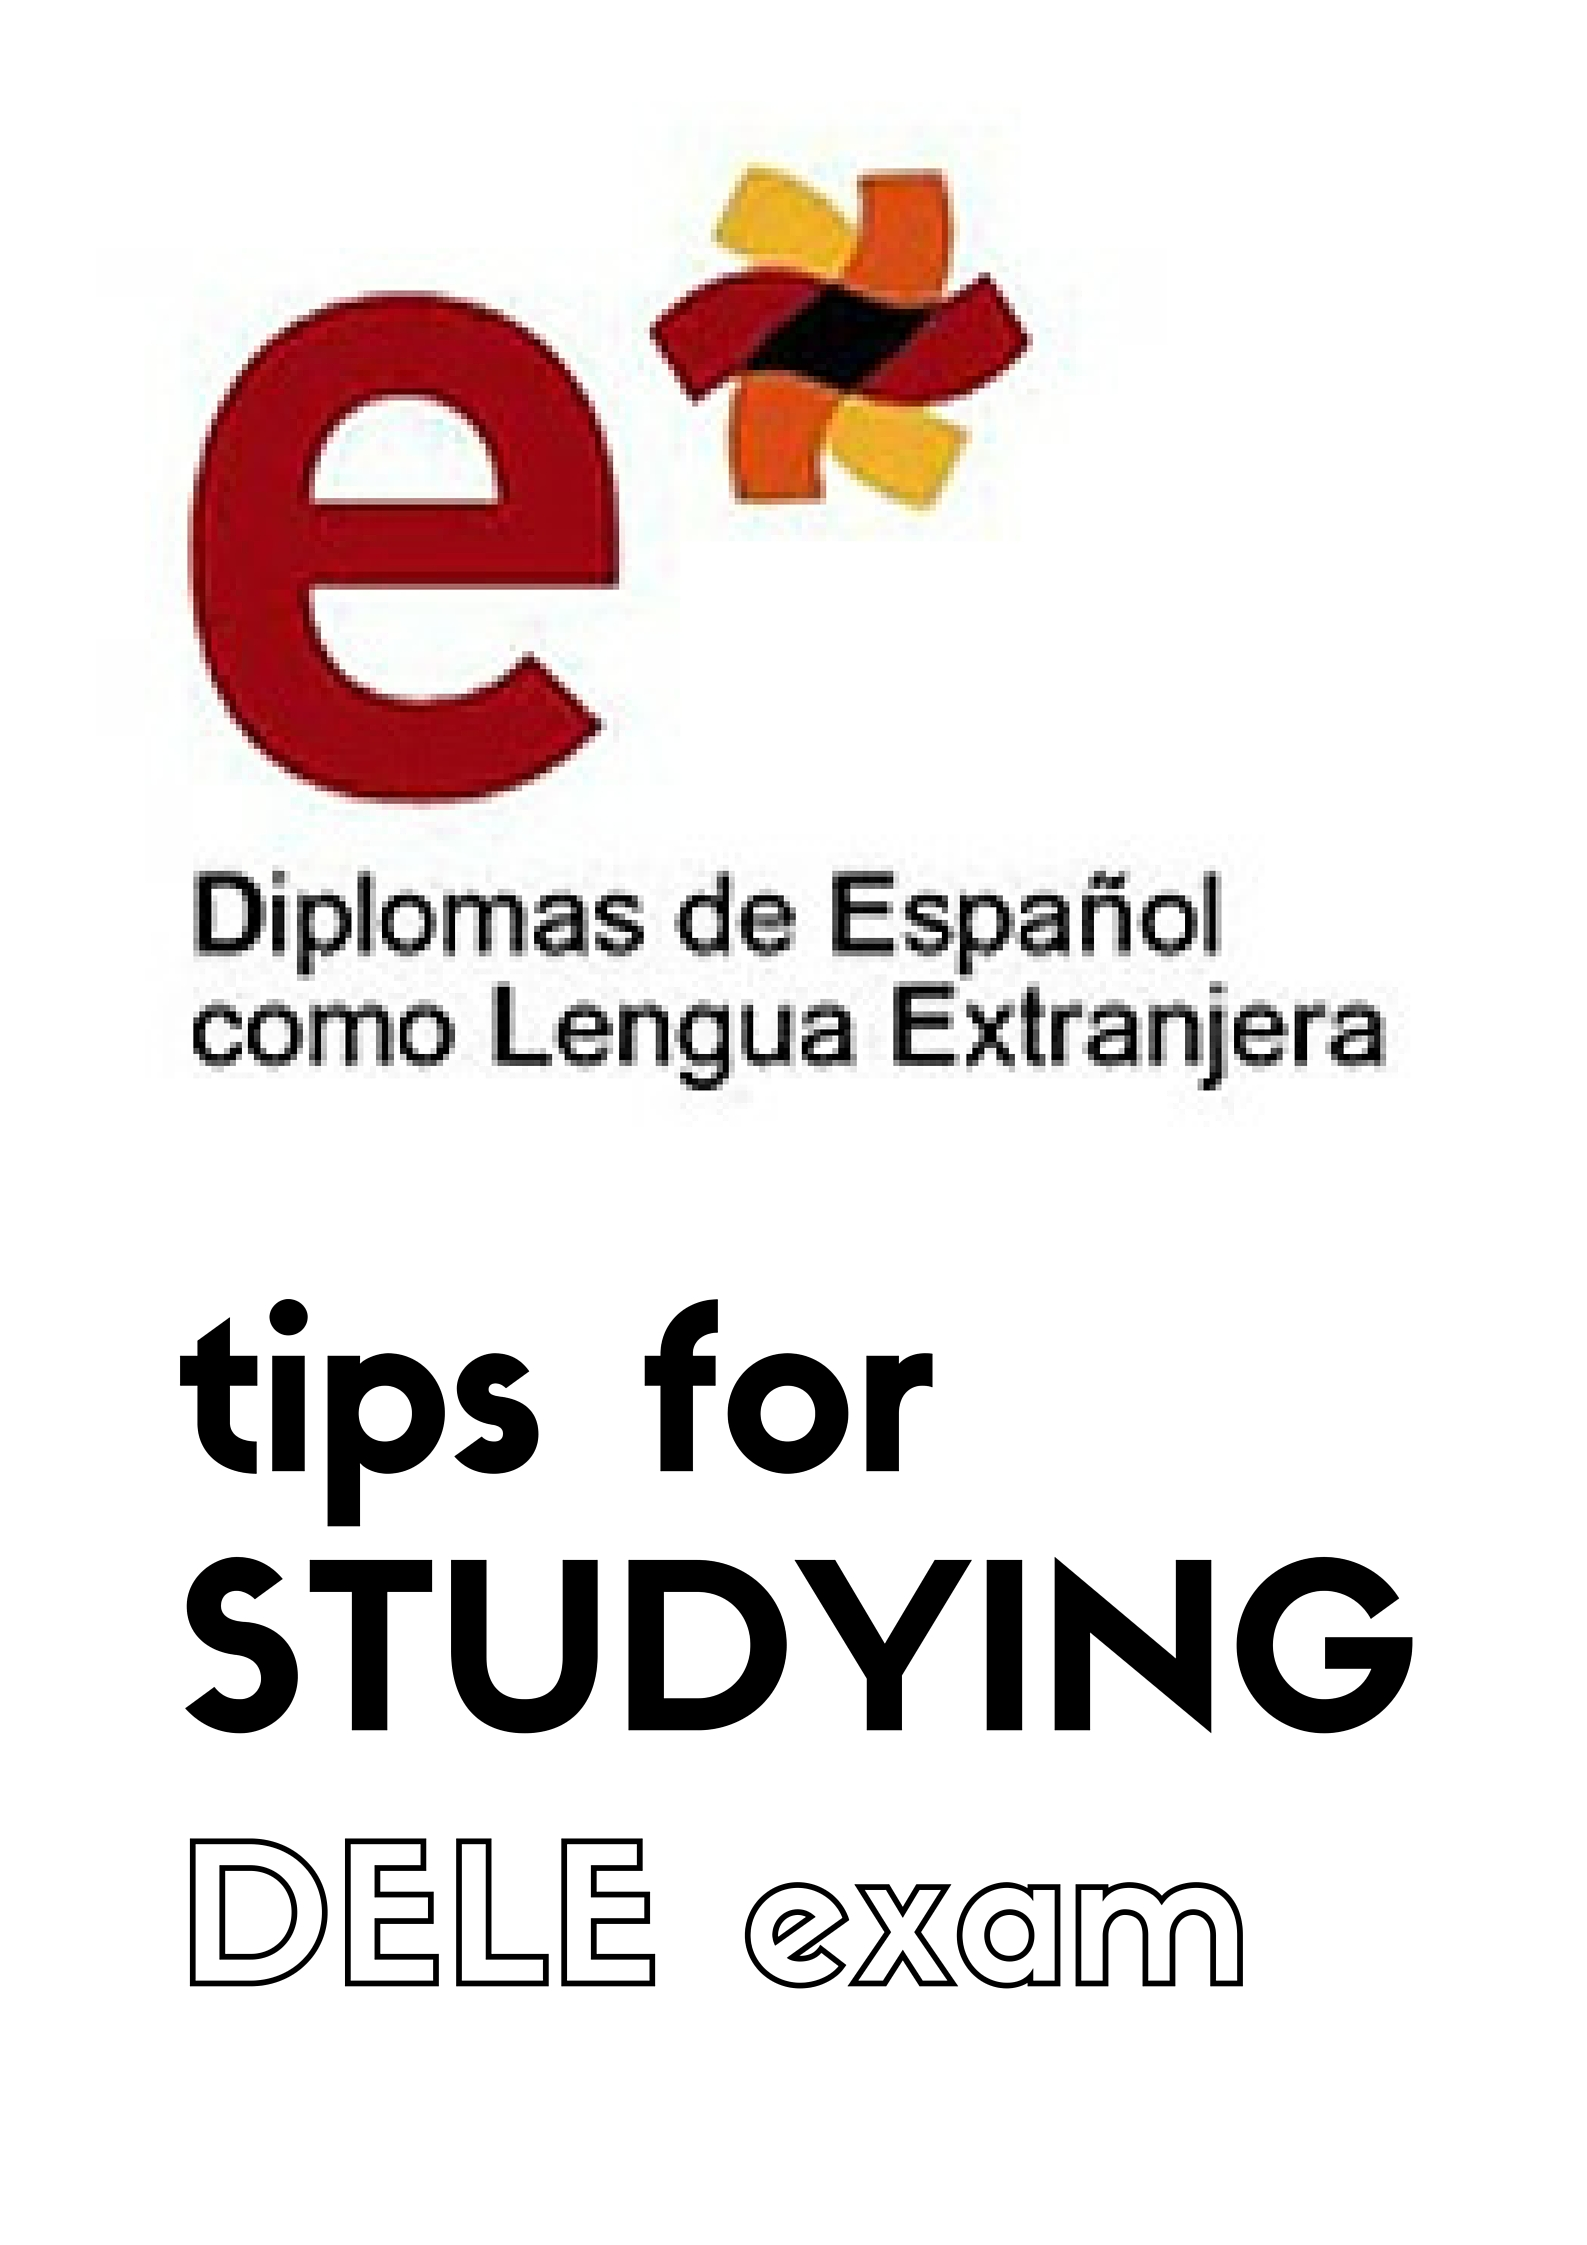 Do's and Don'ts: How to Prepare for the DELE Spanish Exam